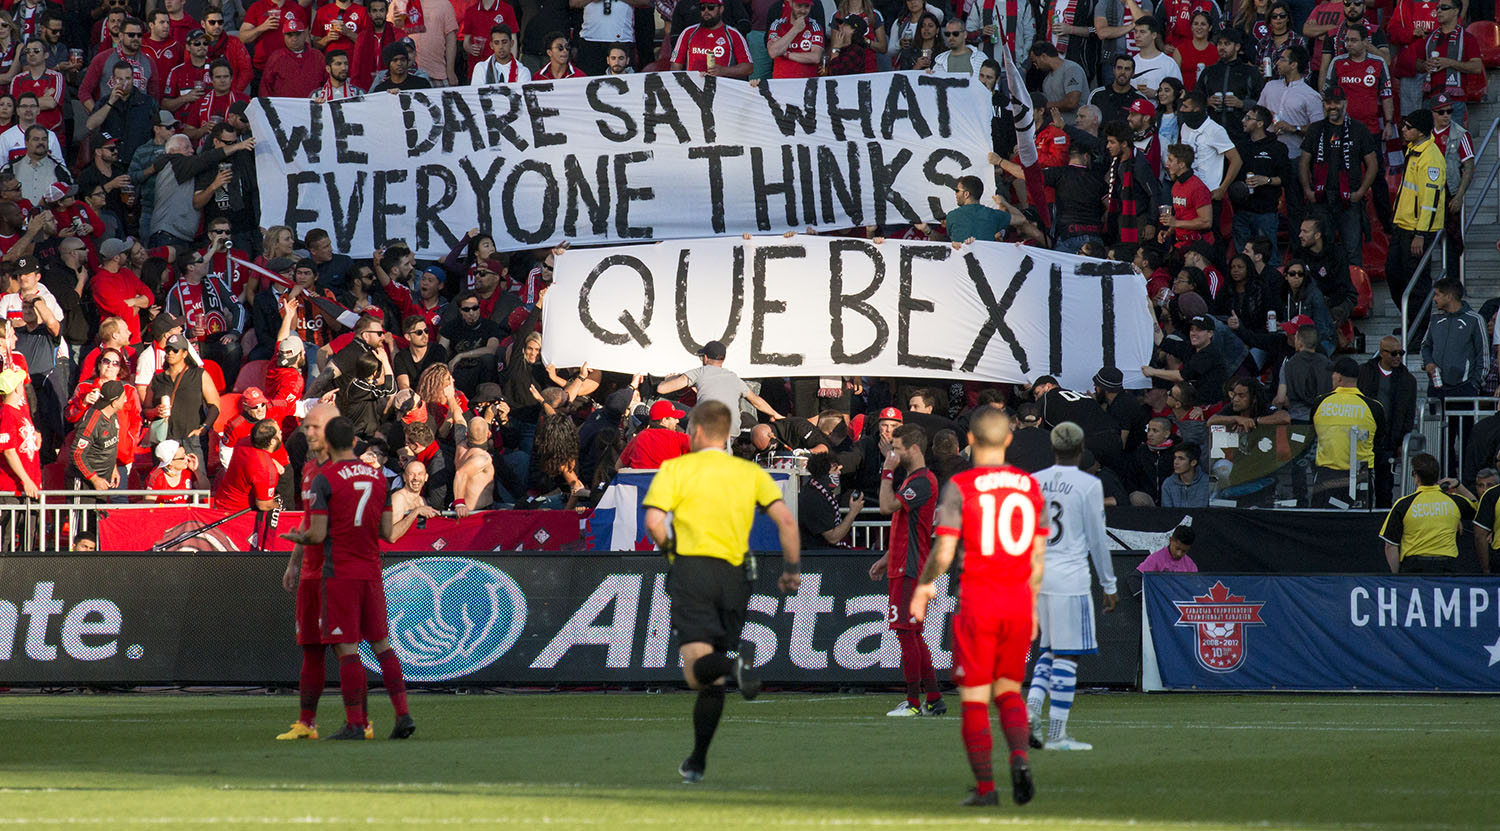 We dare say what everyone thinks Quebrexit. Another banner displayed by the south end supporter's section during the Canadian Championship Final in 2017.Image by Dennis Marciniak of denMAR Media.